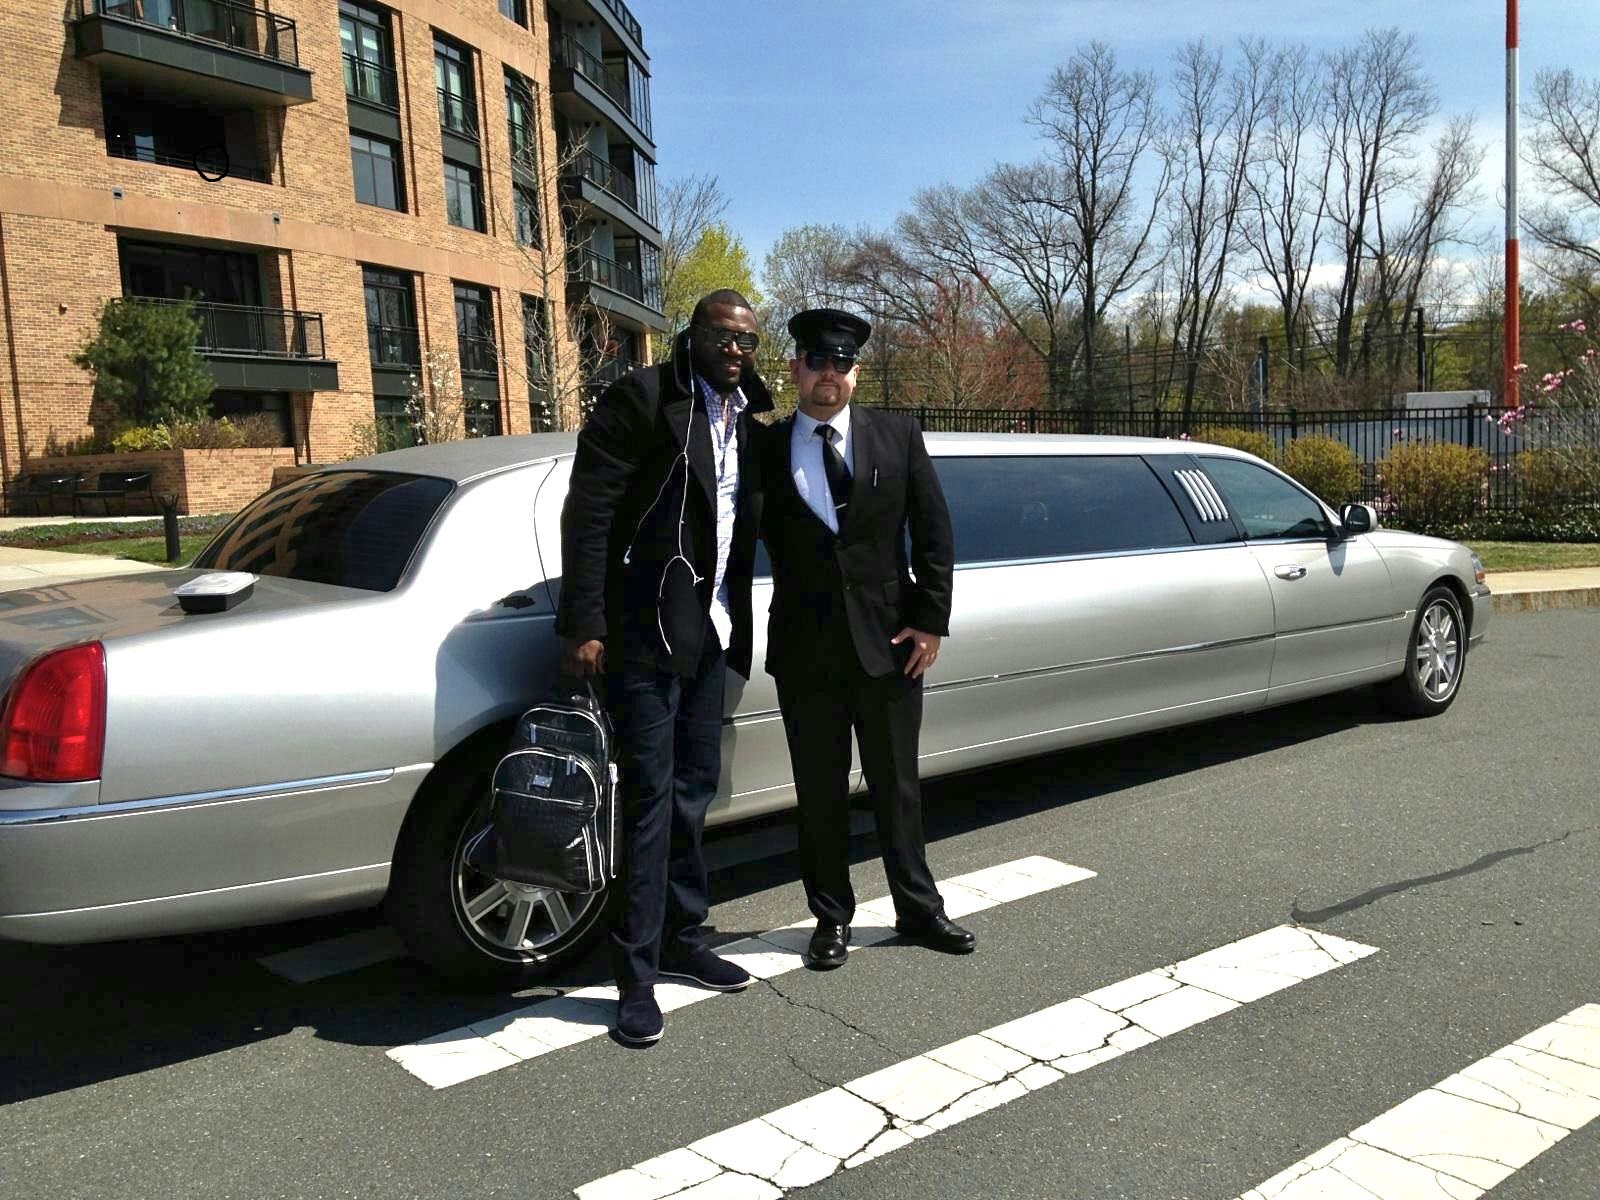 Limos for Rent Paxton Ma 01612